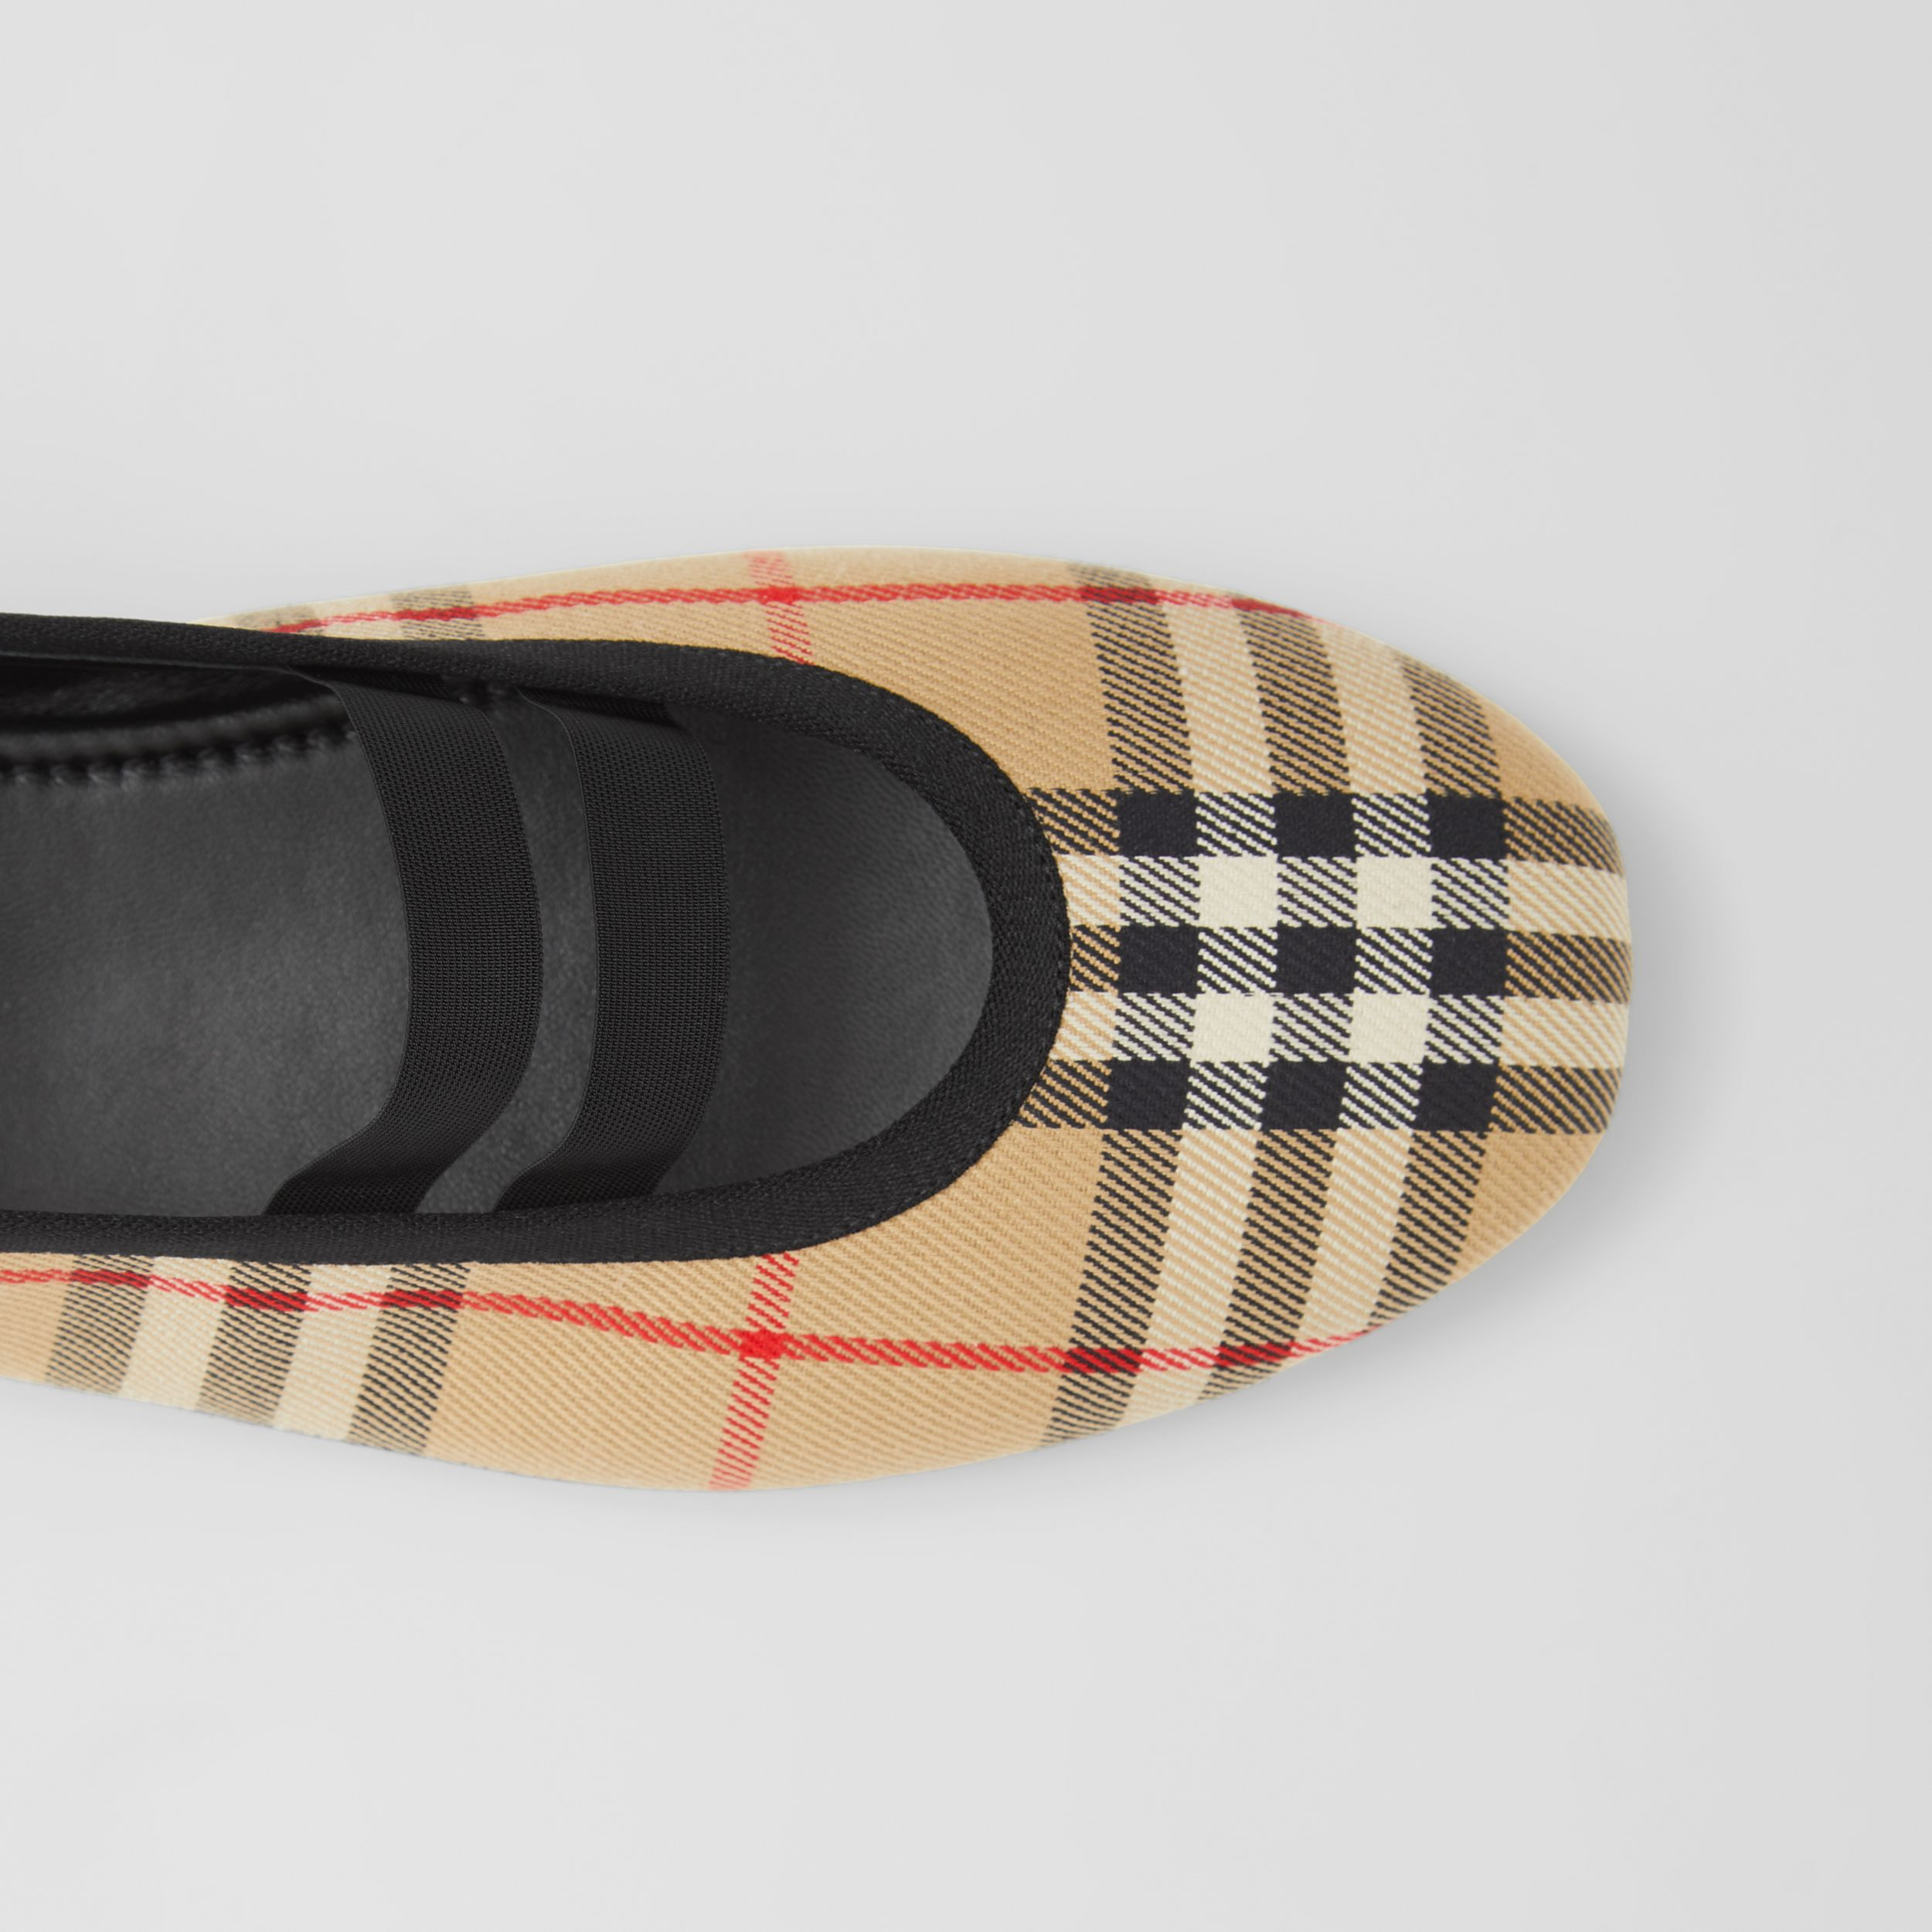 Logo Detail Vintage Check Cotton Ballerinas in Archive Beige - Women | Burberry - 2